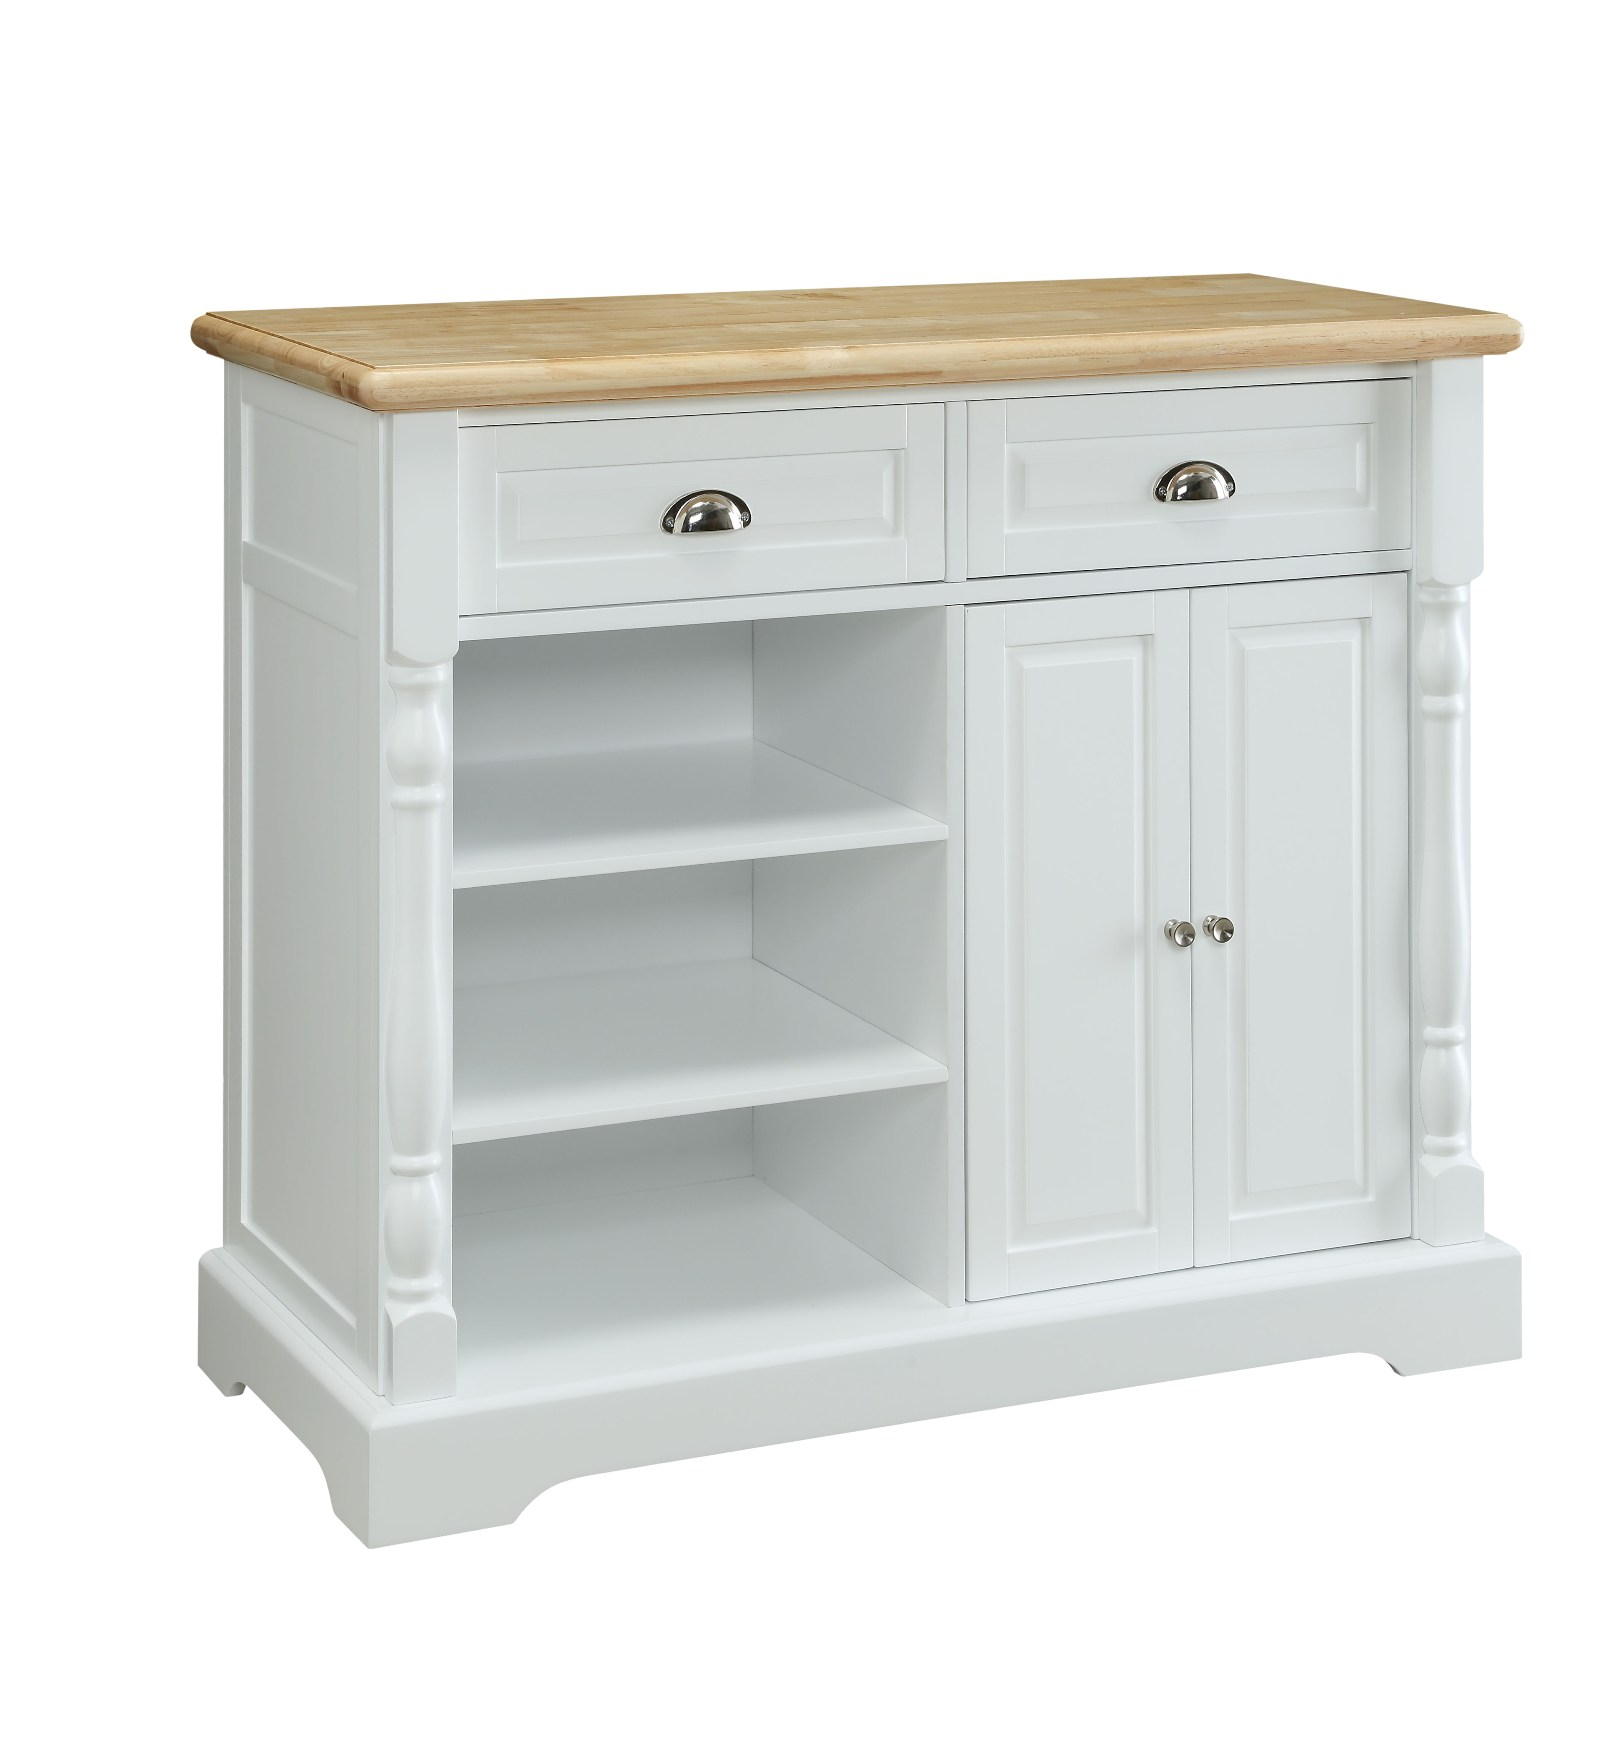 Essential home kitchen cart white natural